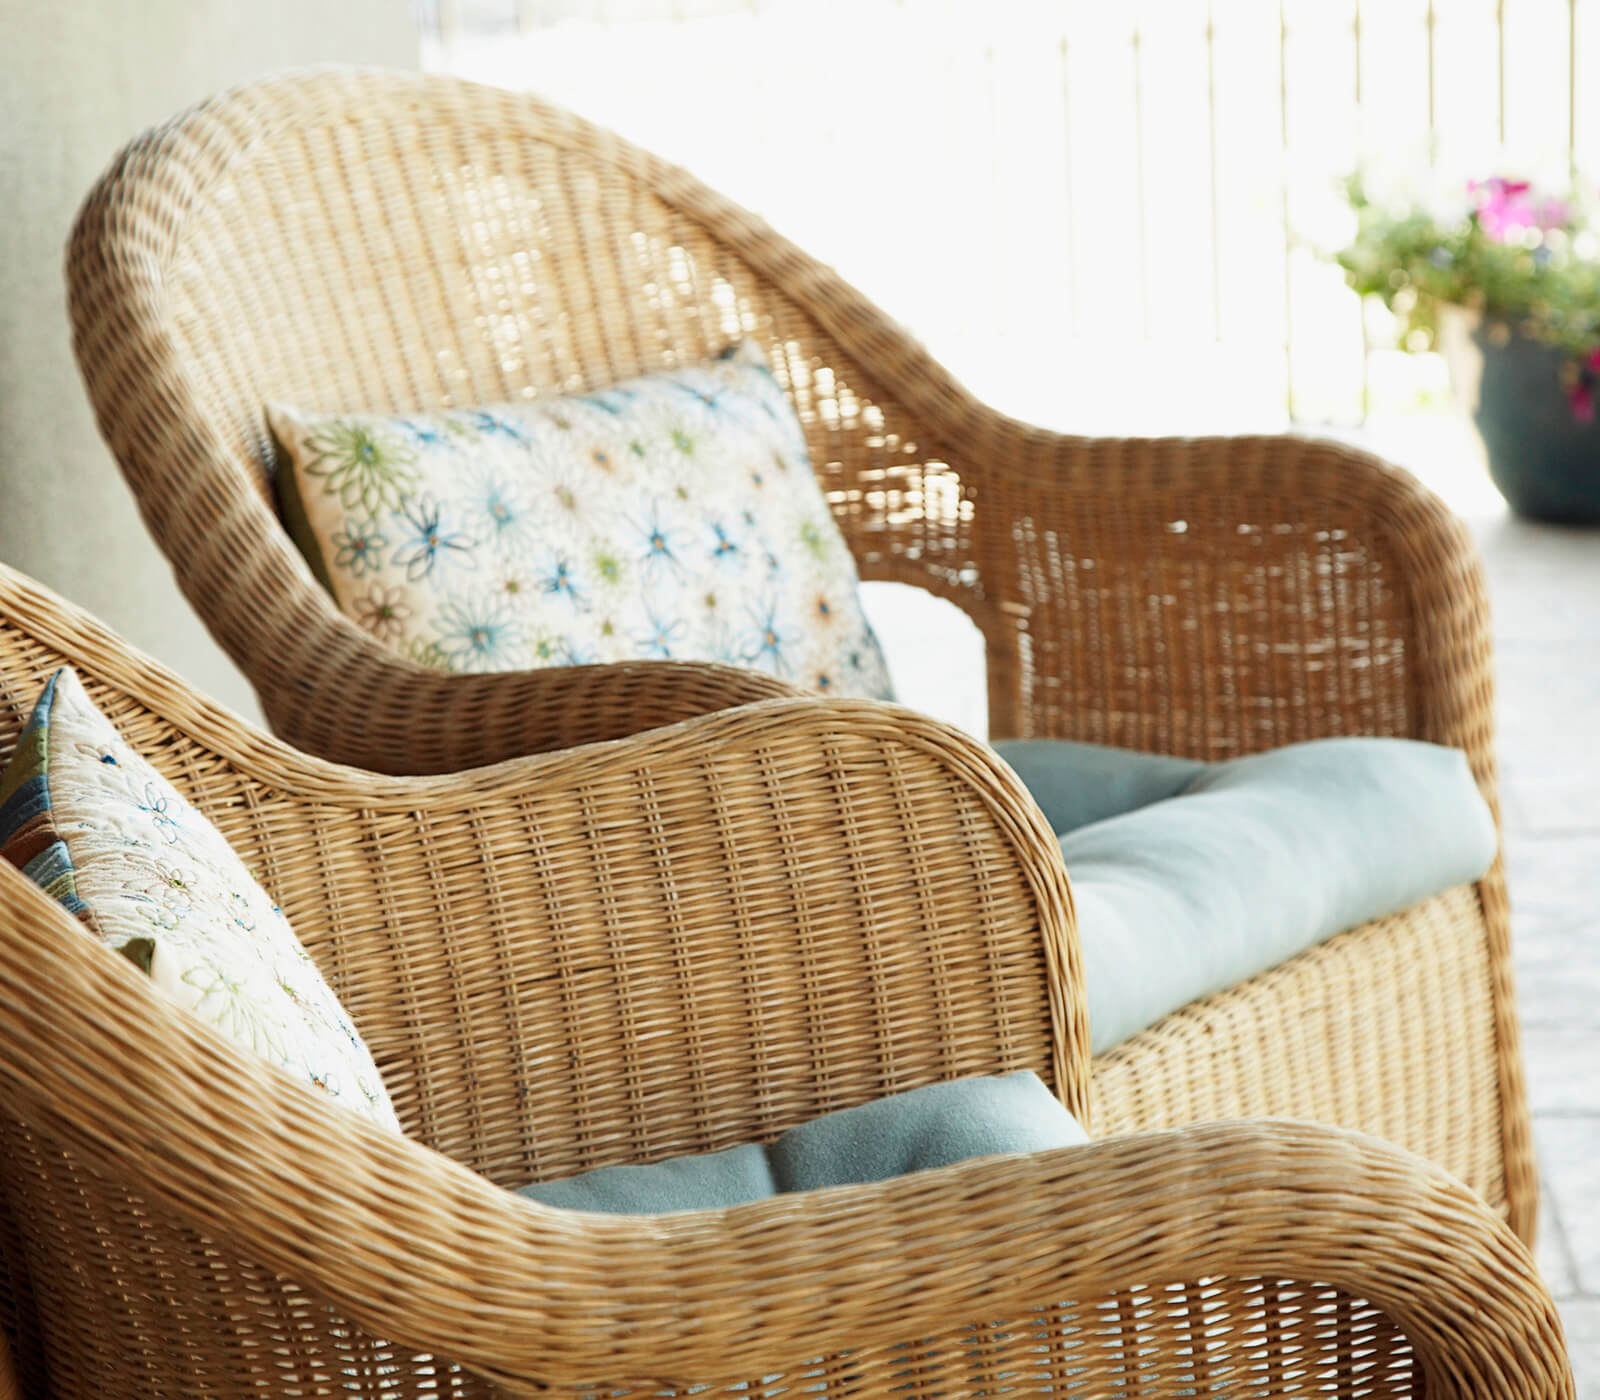 1-diy-patio-chair-cushion.jpg